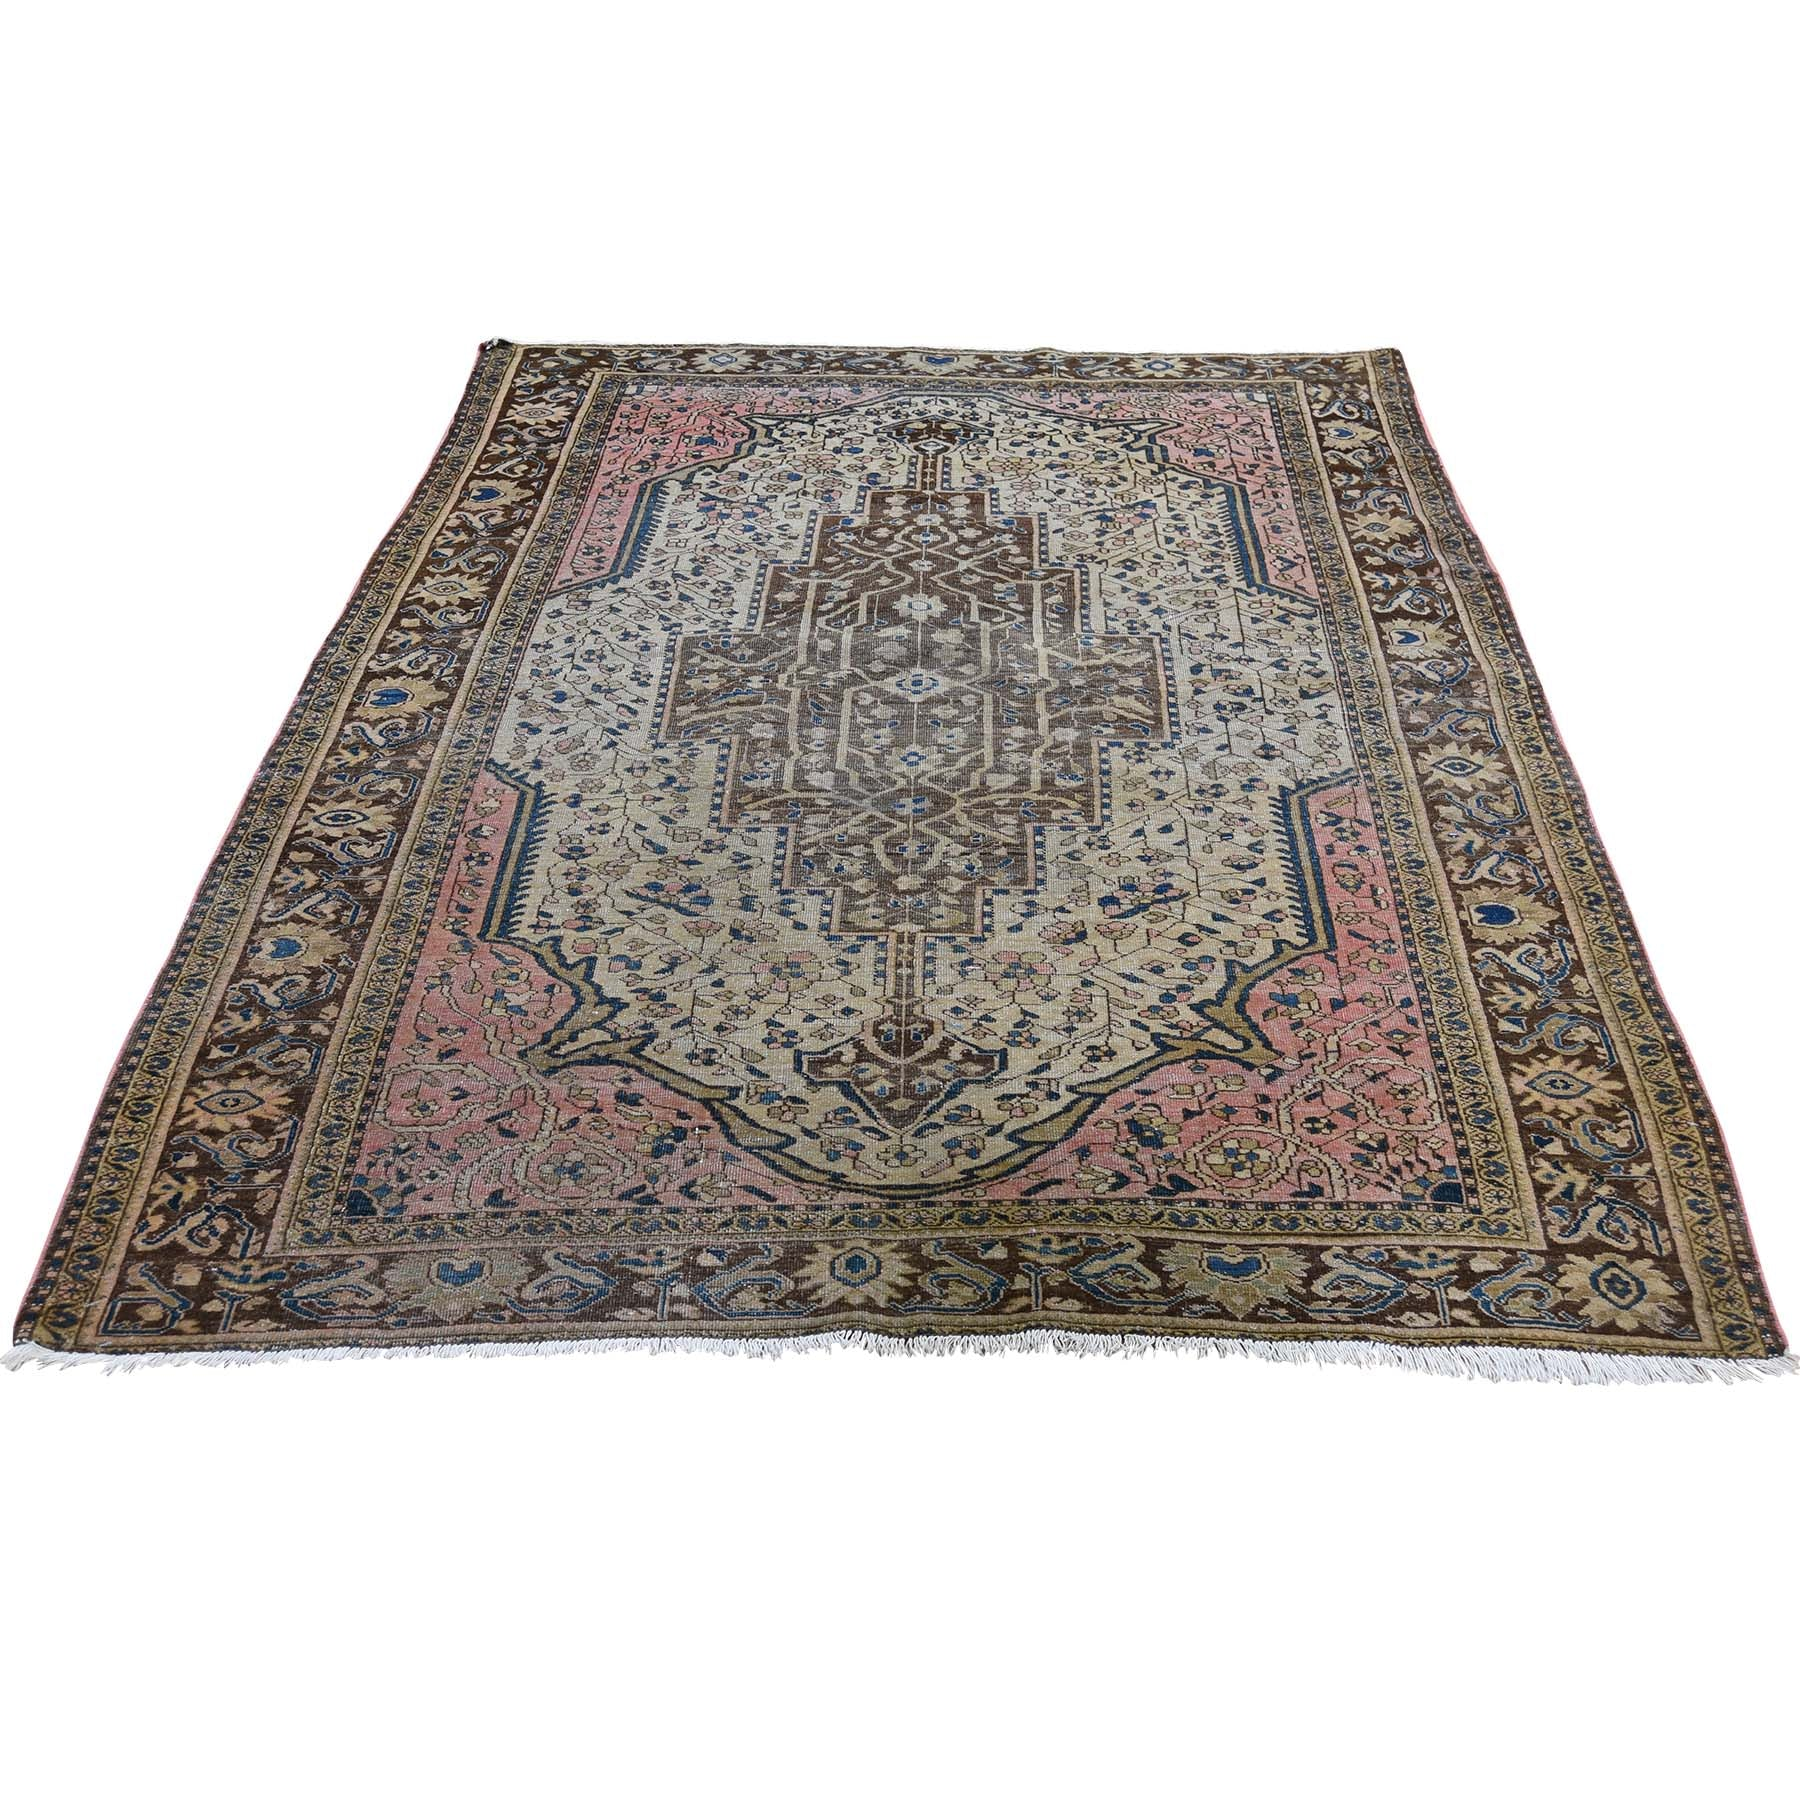 "Handmade Antique Rectangle Rug > Design# SH45918 > Size: 4'-5"" x 6'-6"" [ONLINE ONLY]"